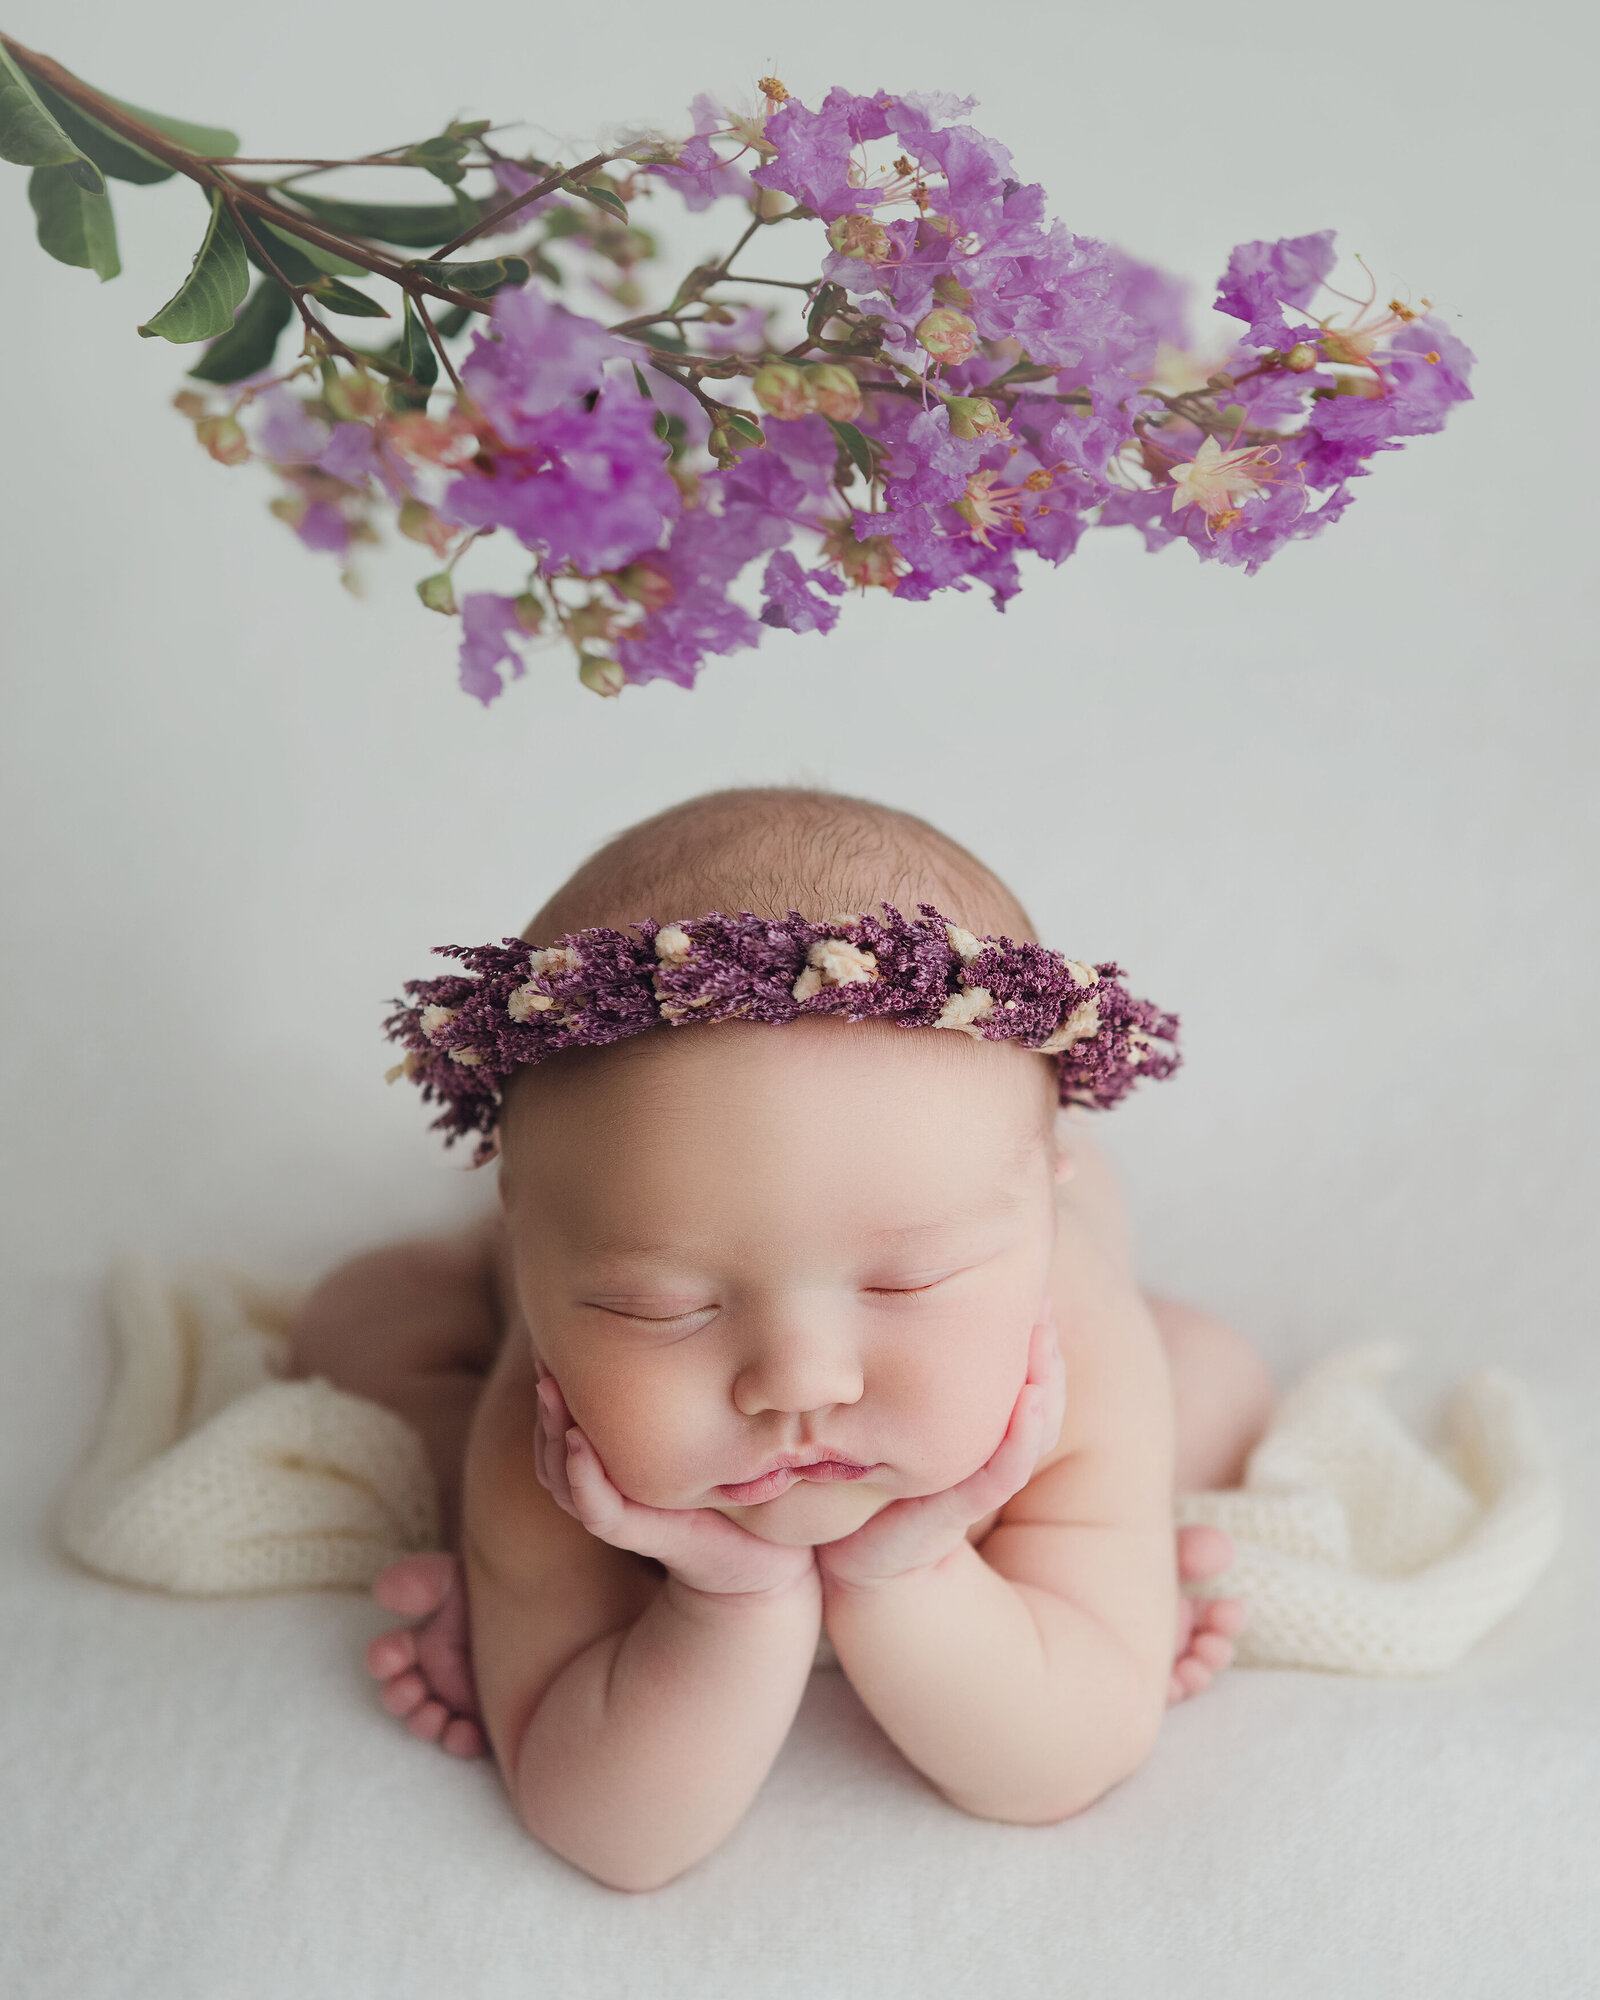 Professional studio portrait of newborn baby asleep with flower crown